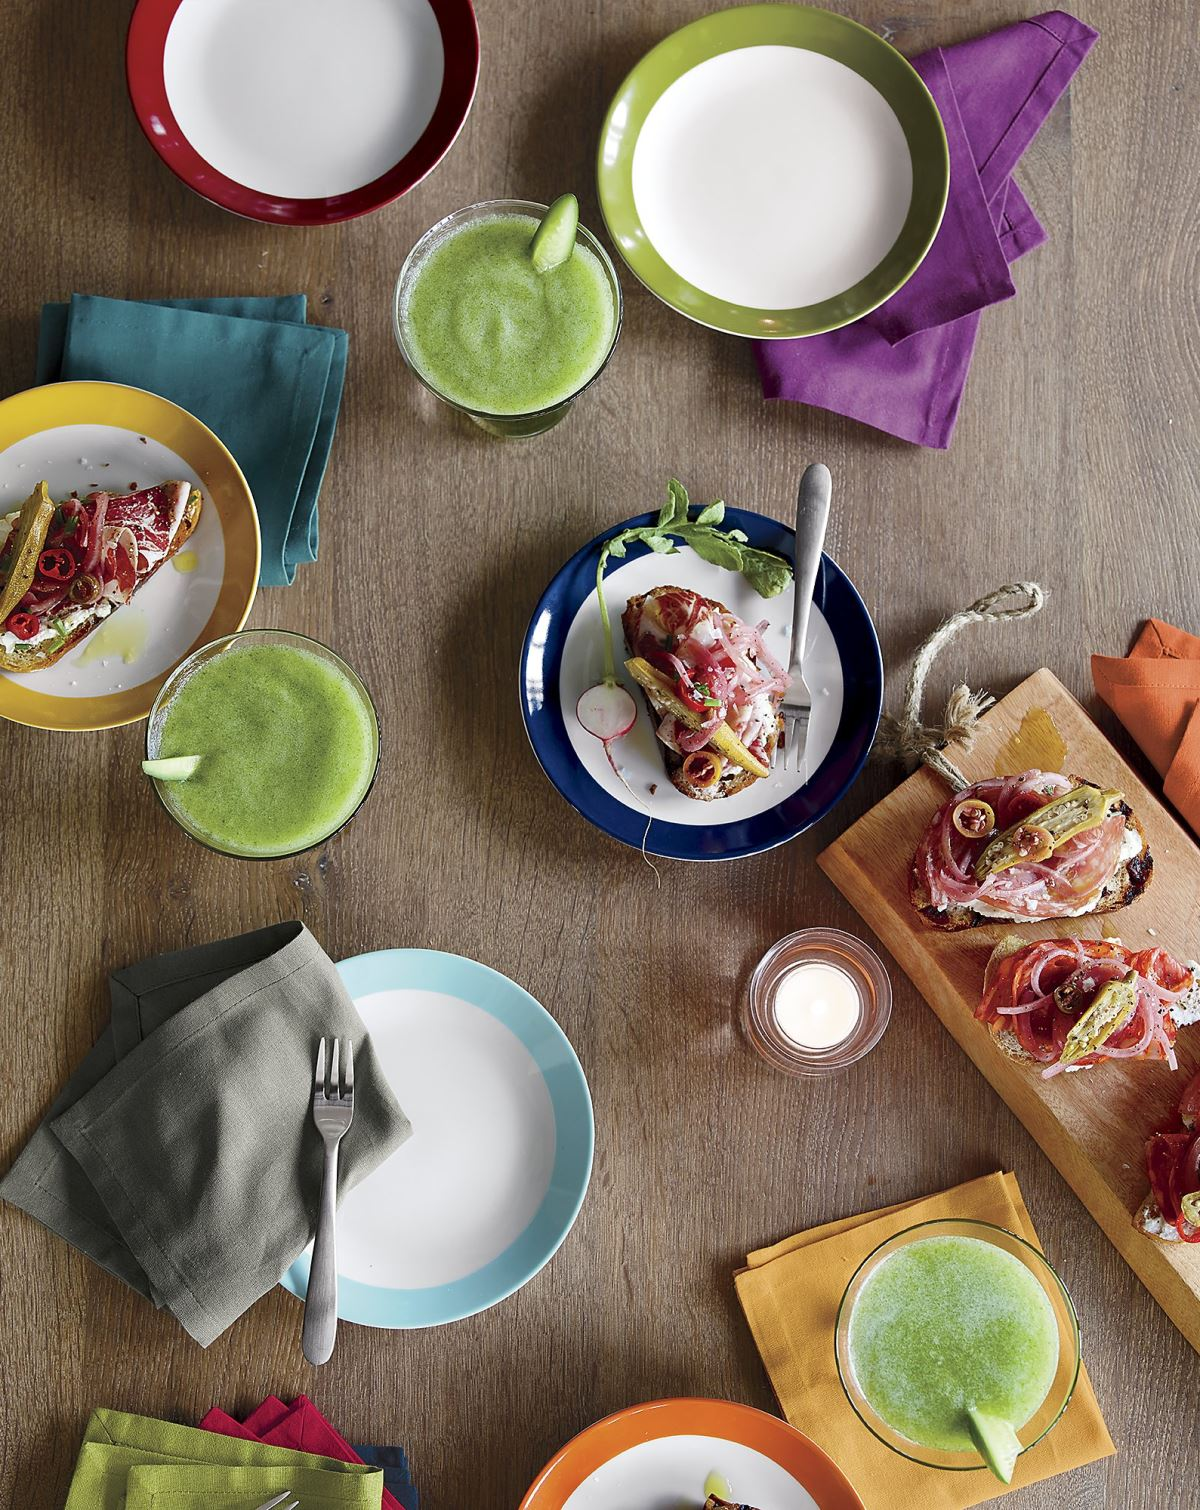 Cocktail napkins from Crate & Barrel